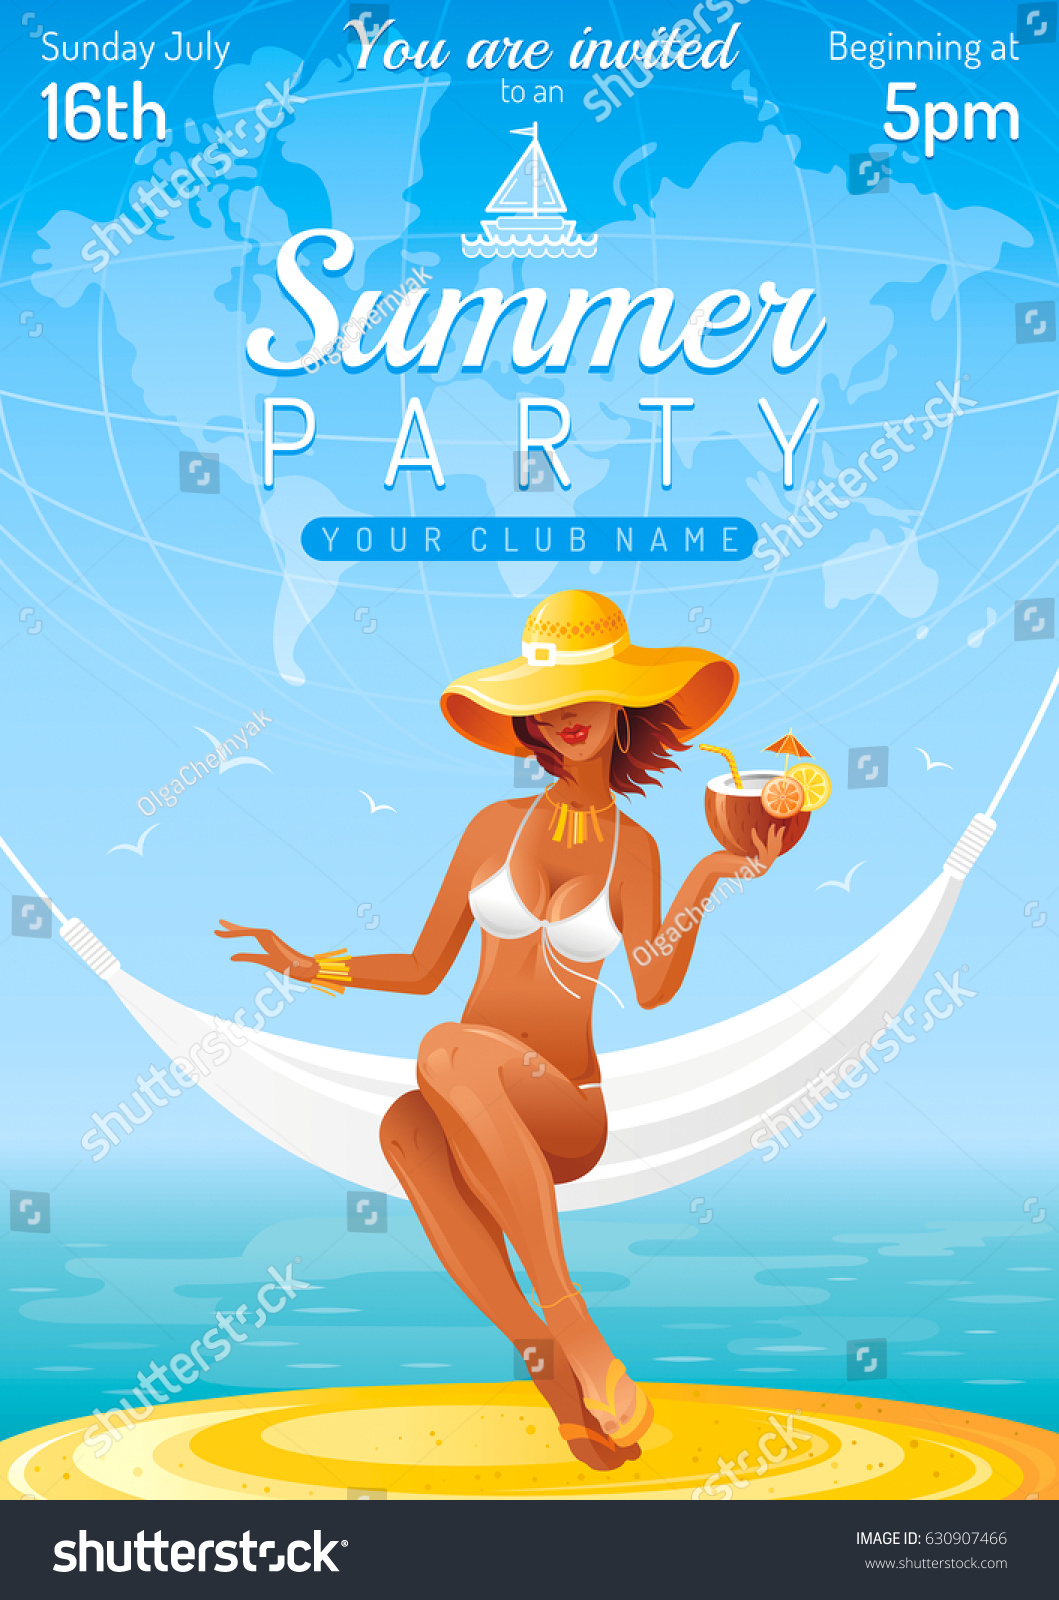 Poster design landscape - Summer Party Invitation Flyer Design Sea Beach Landscape Background Sexy Young Girl Travel